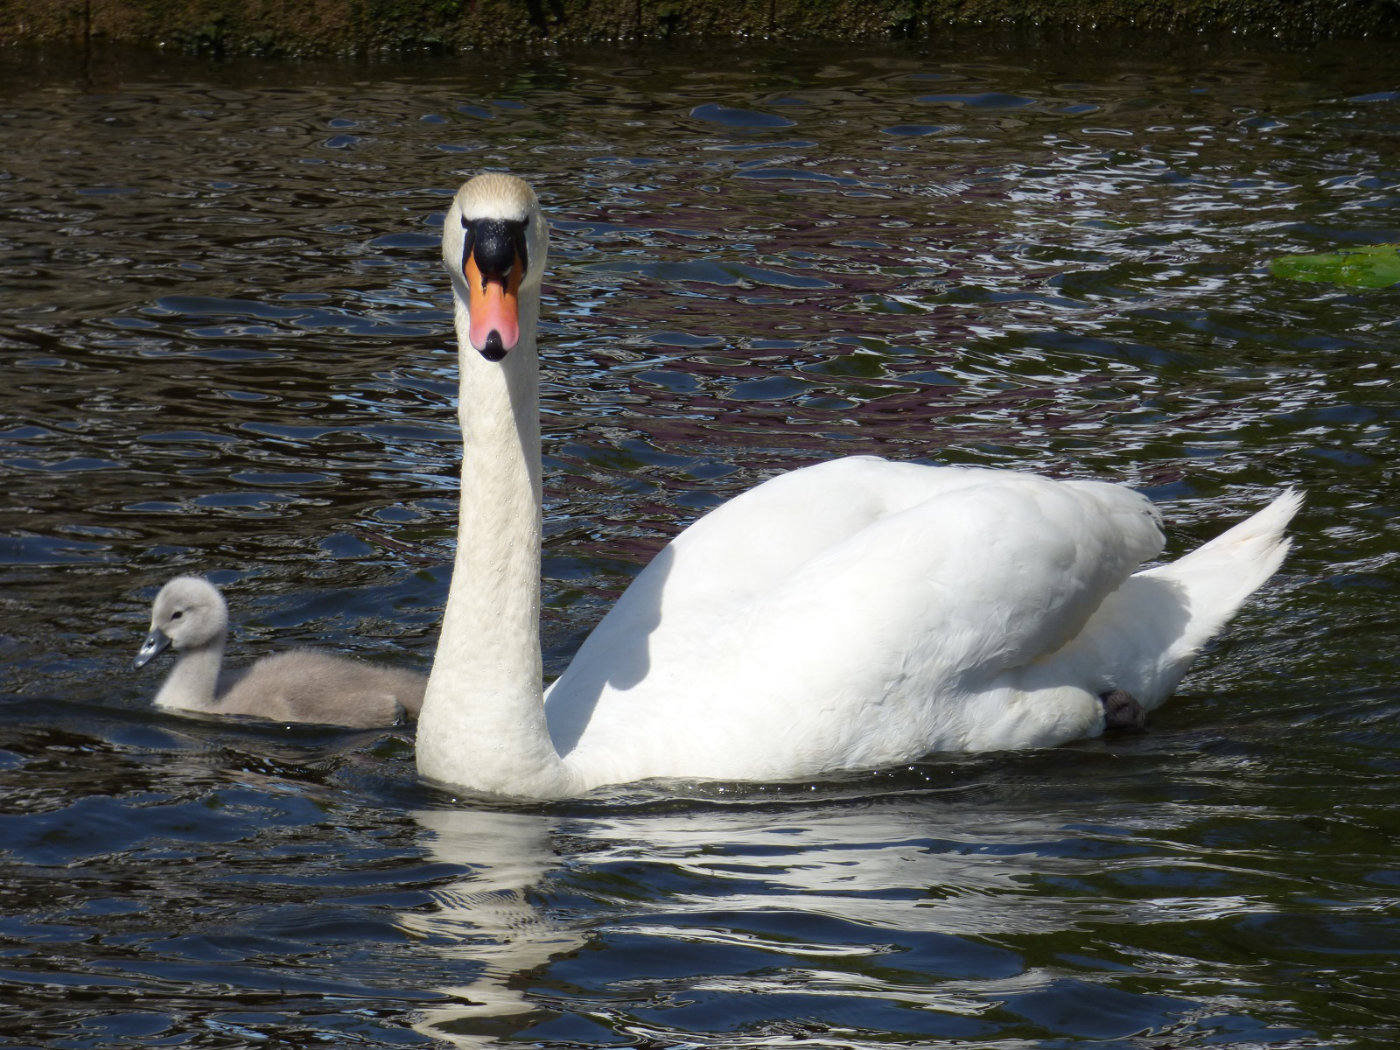 A swan and cygnet